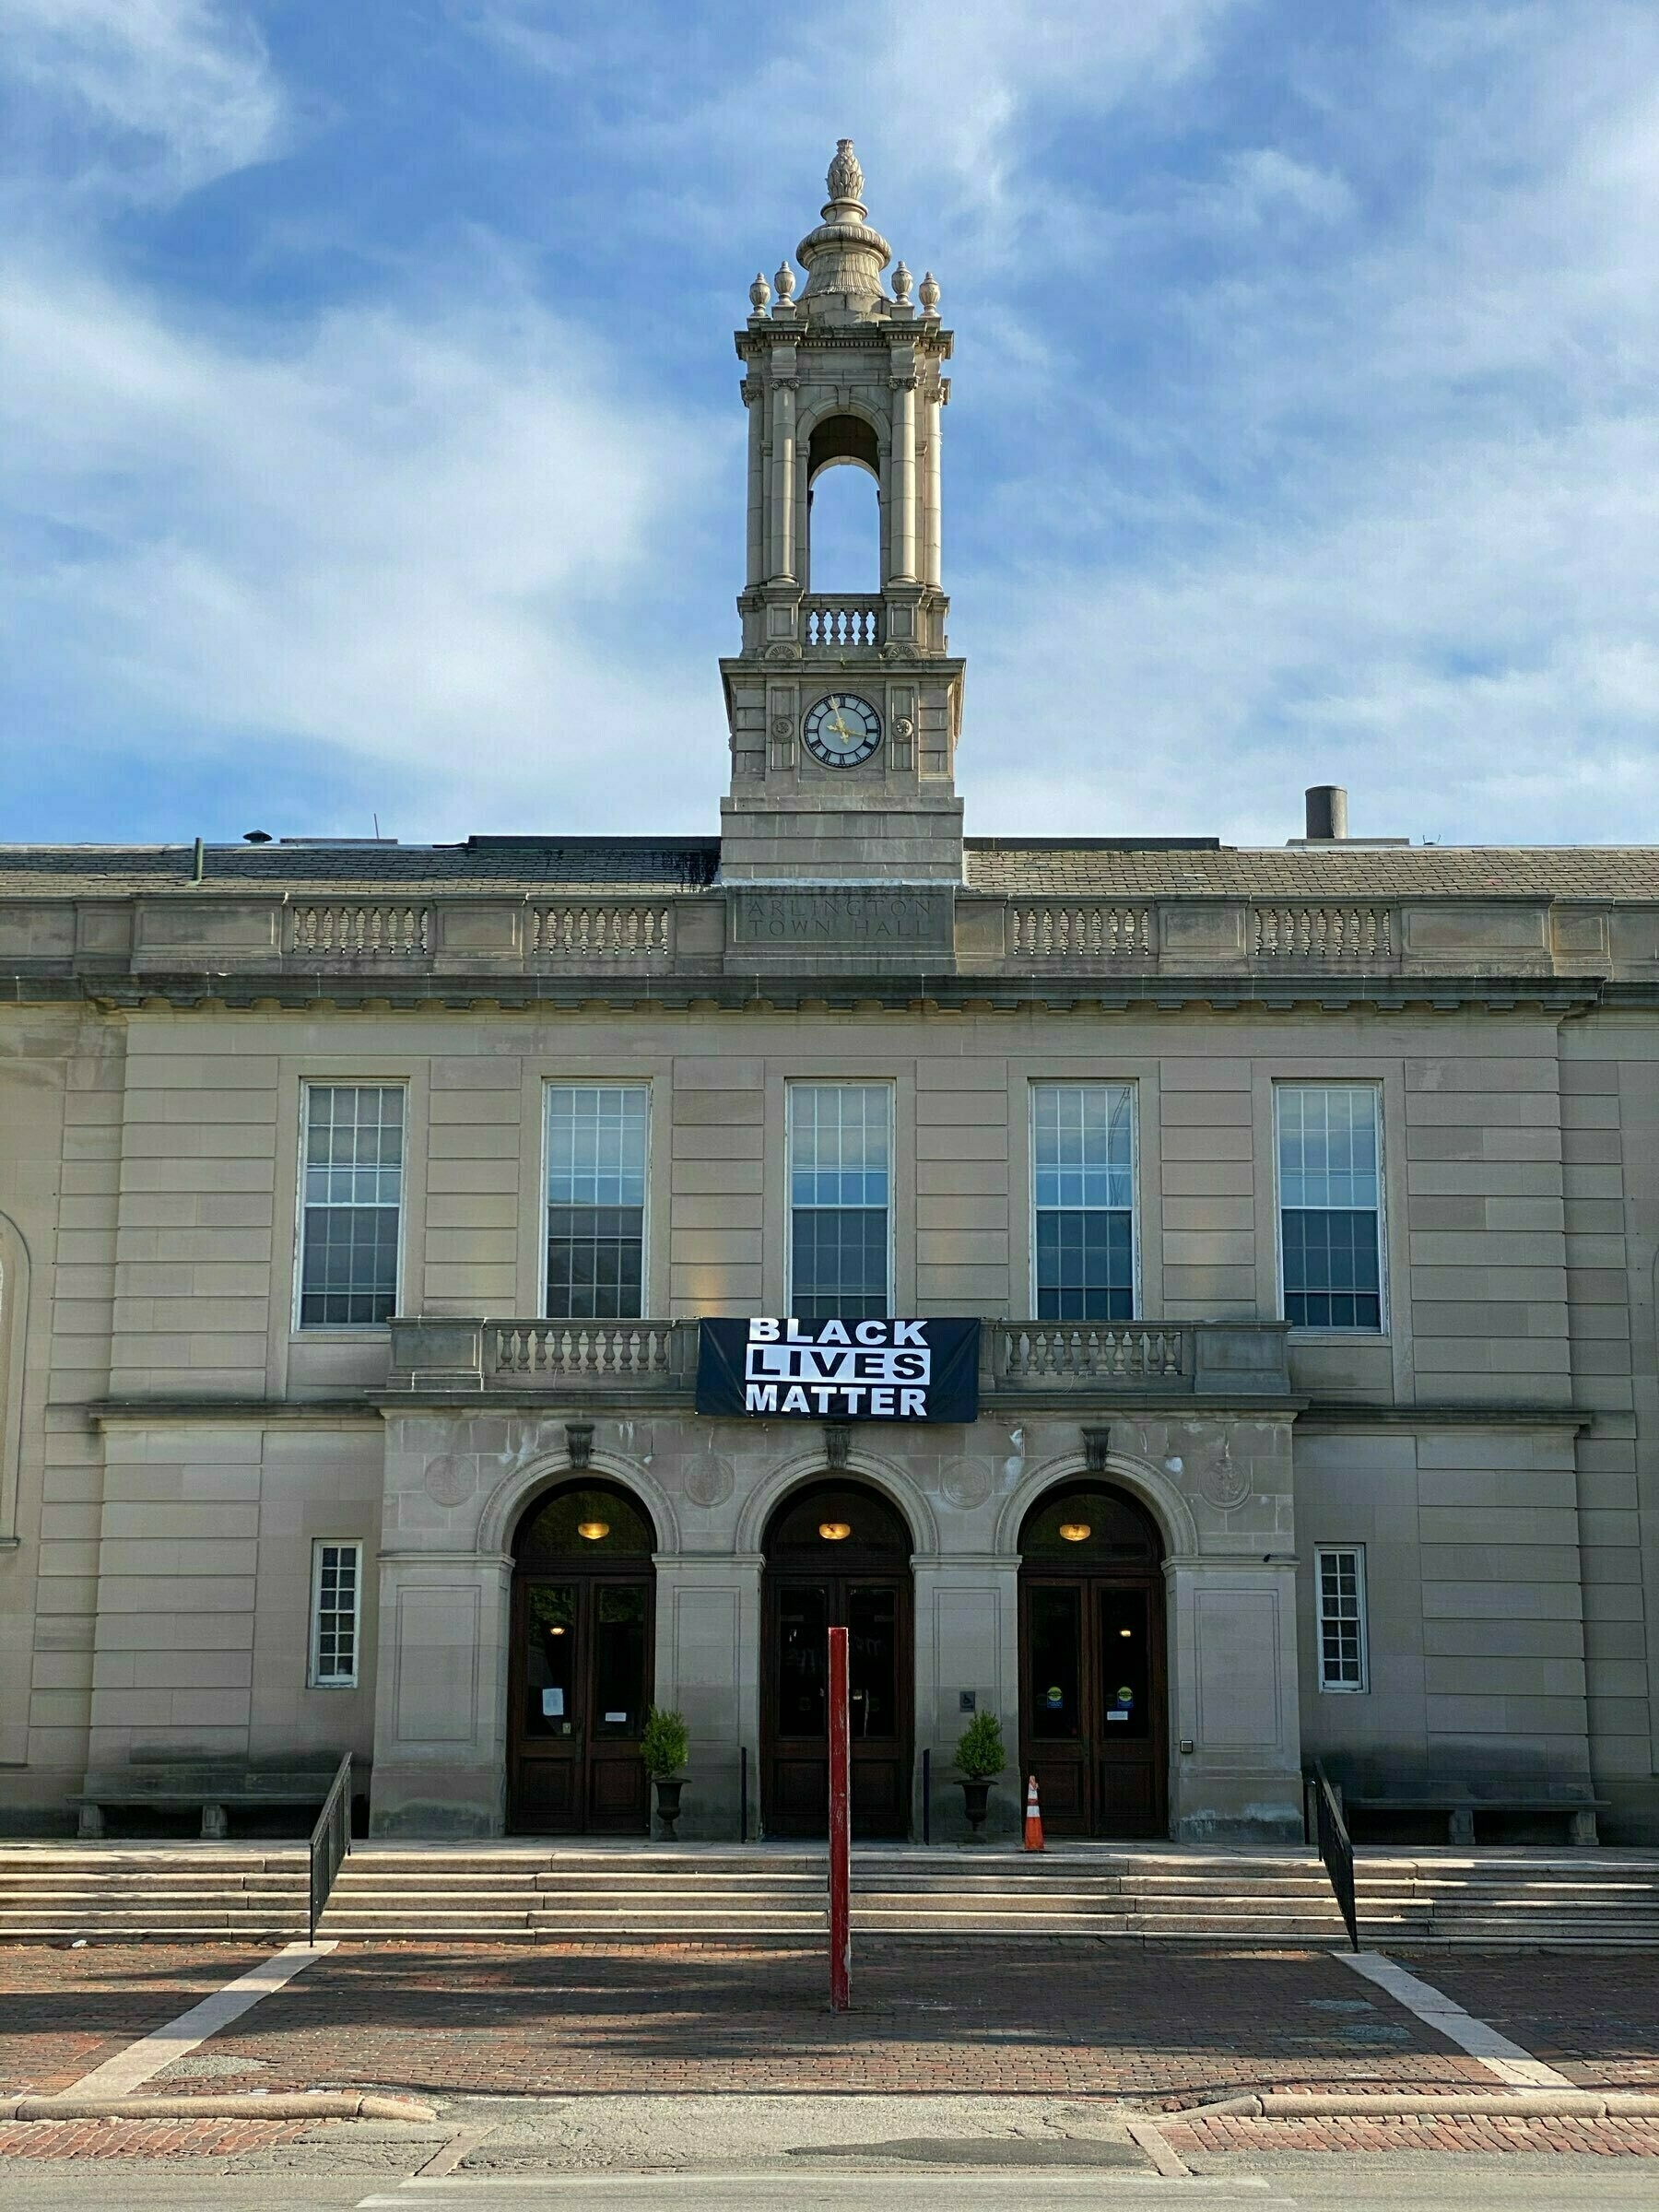 picture of arlington town hall building with a Black Lives Matter banner hanging from it